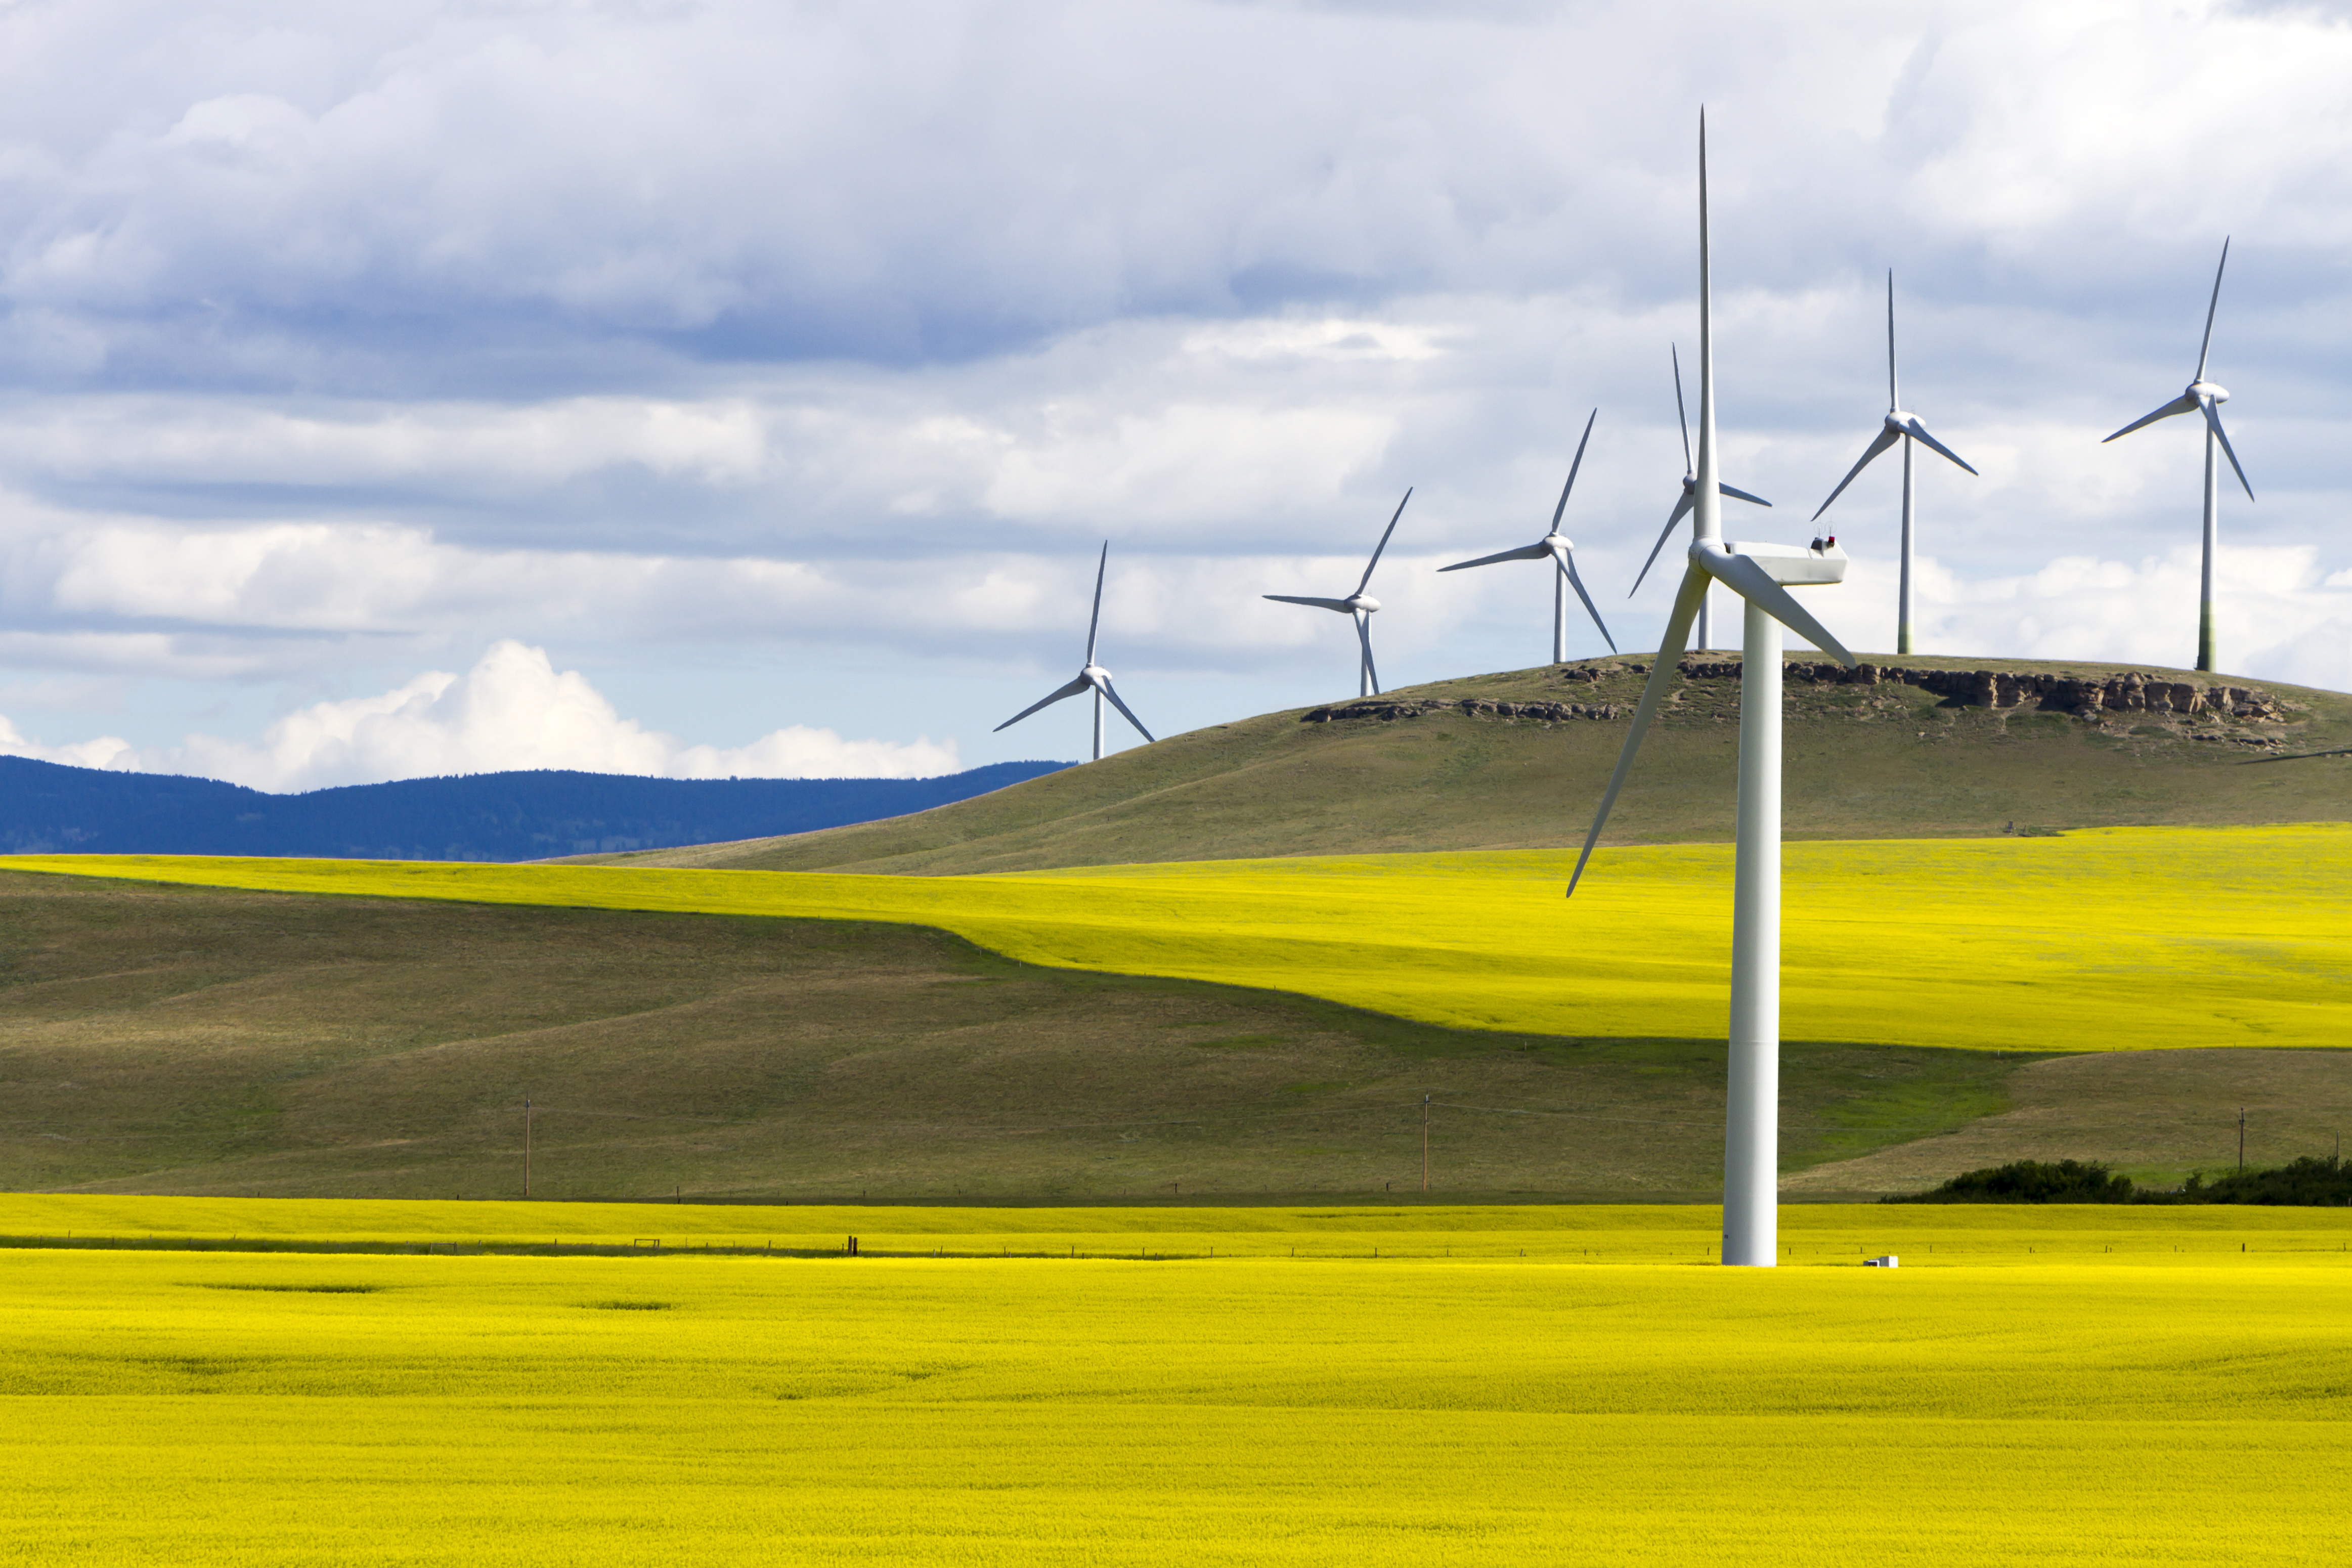 Wind turbine renewable energy, Western Canada